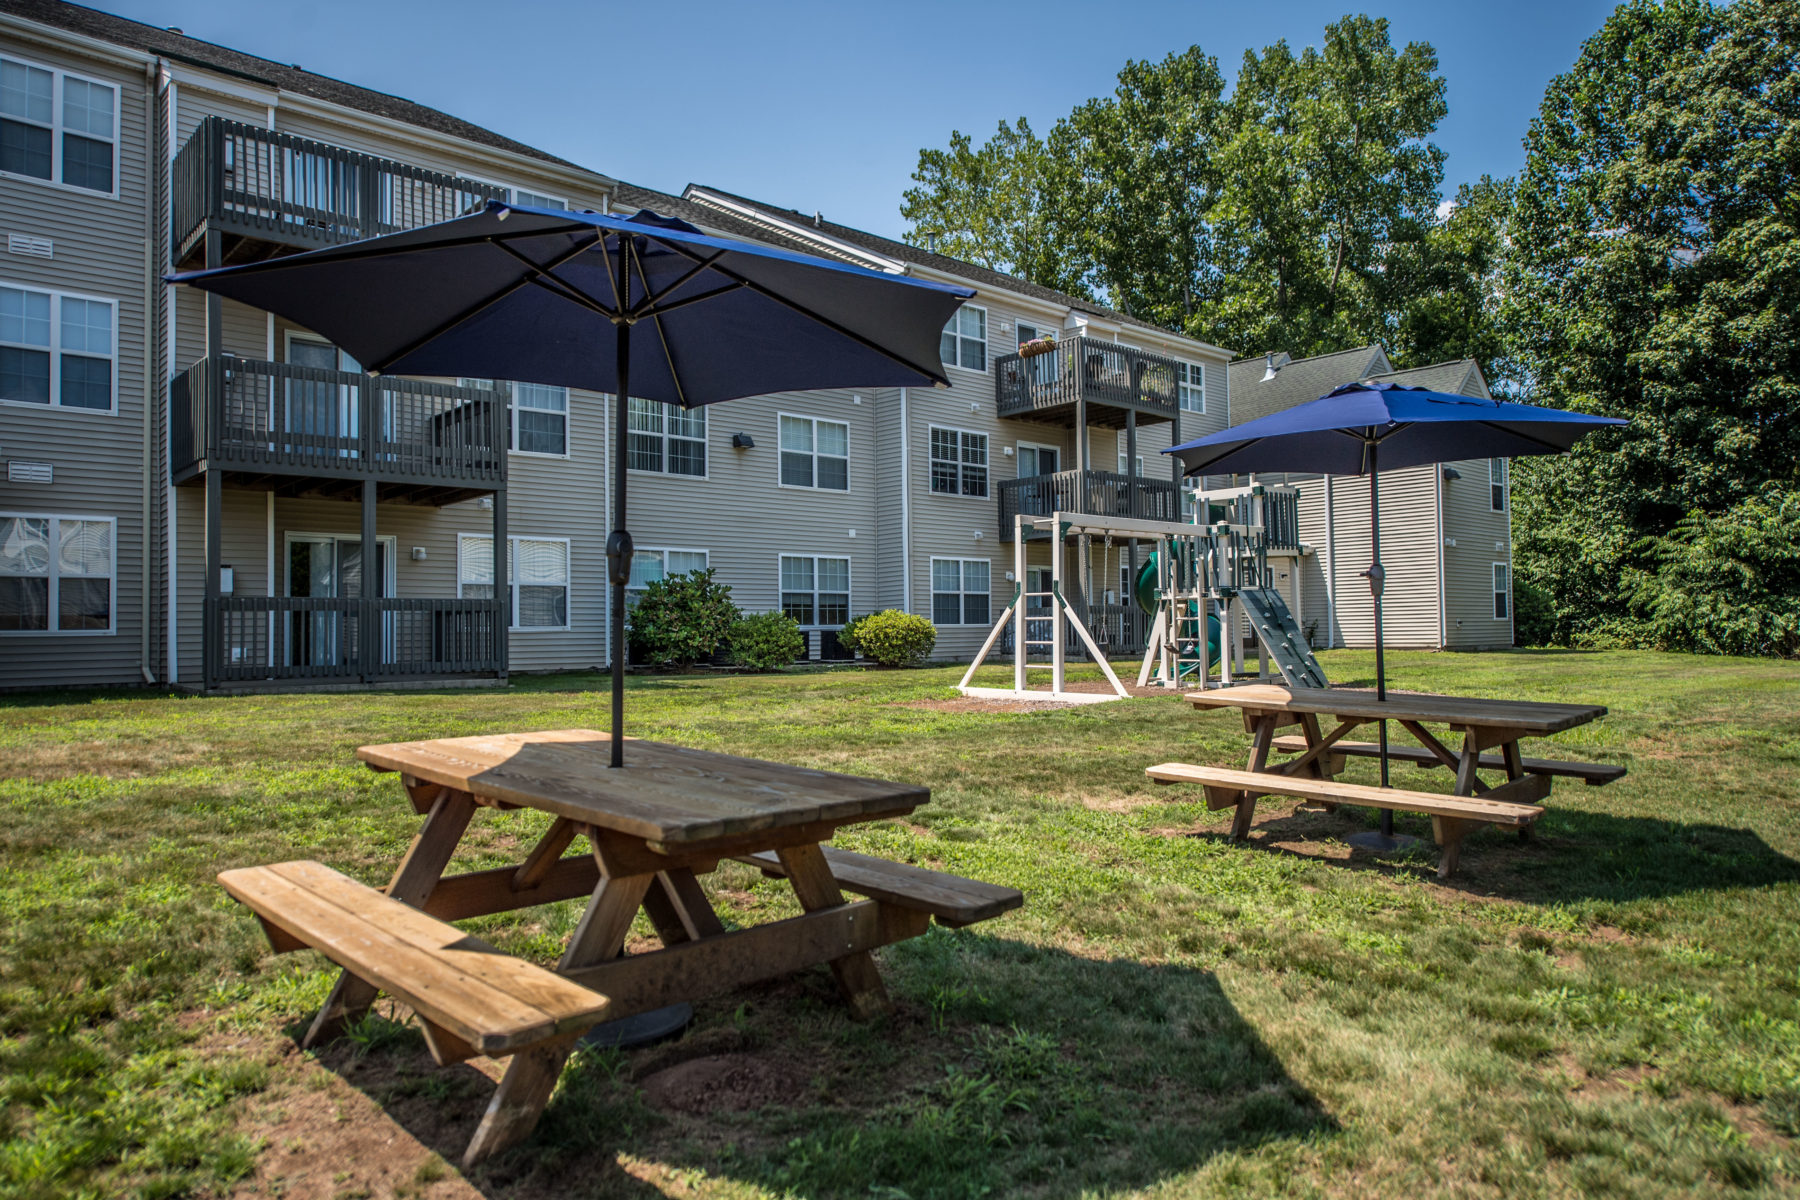 Picnic and play area windshire terrace apartments middletown ct